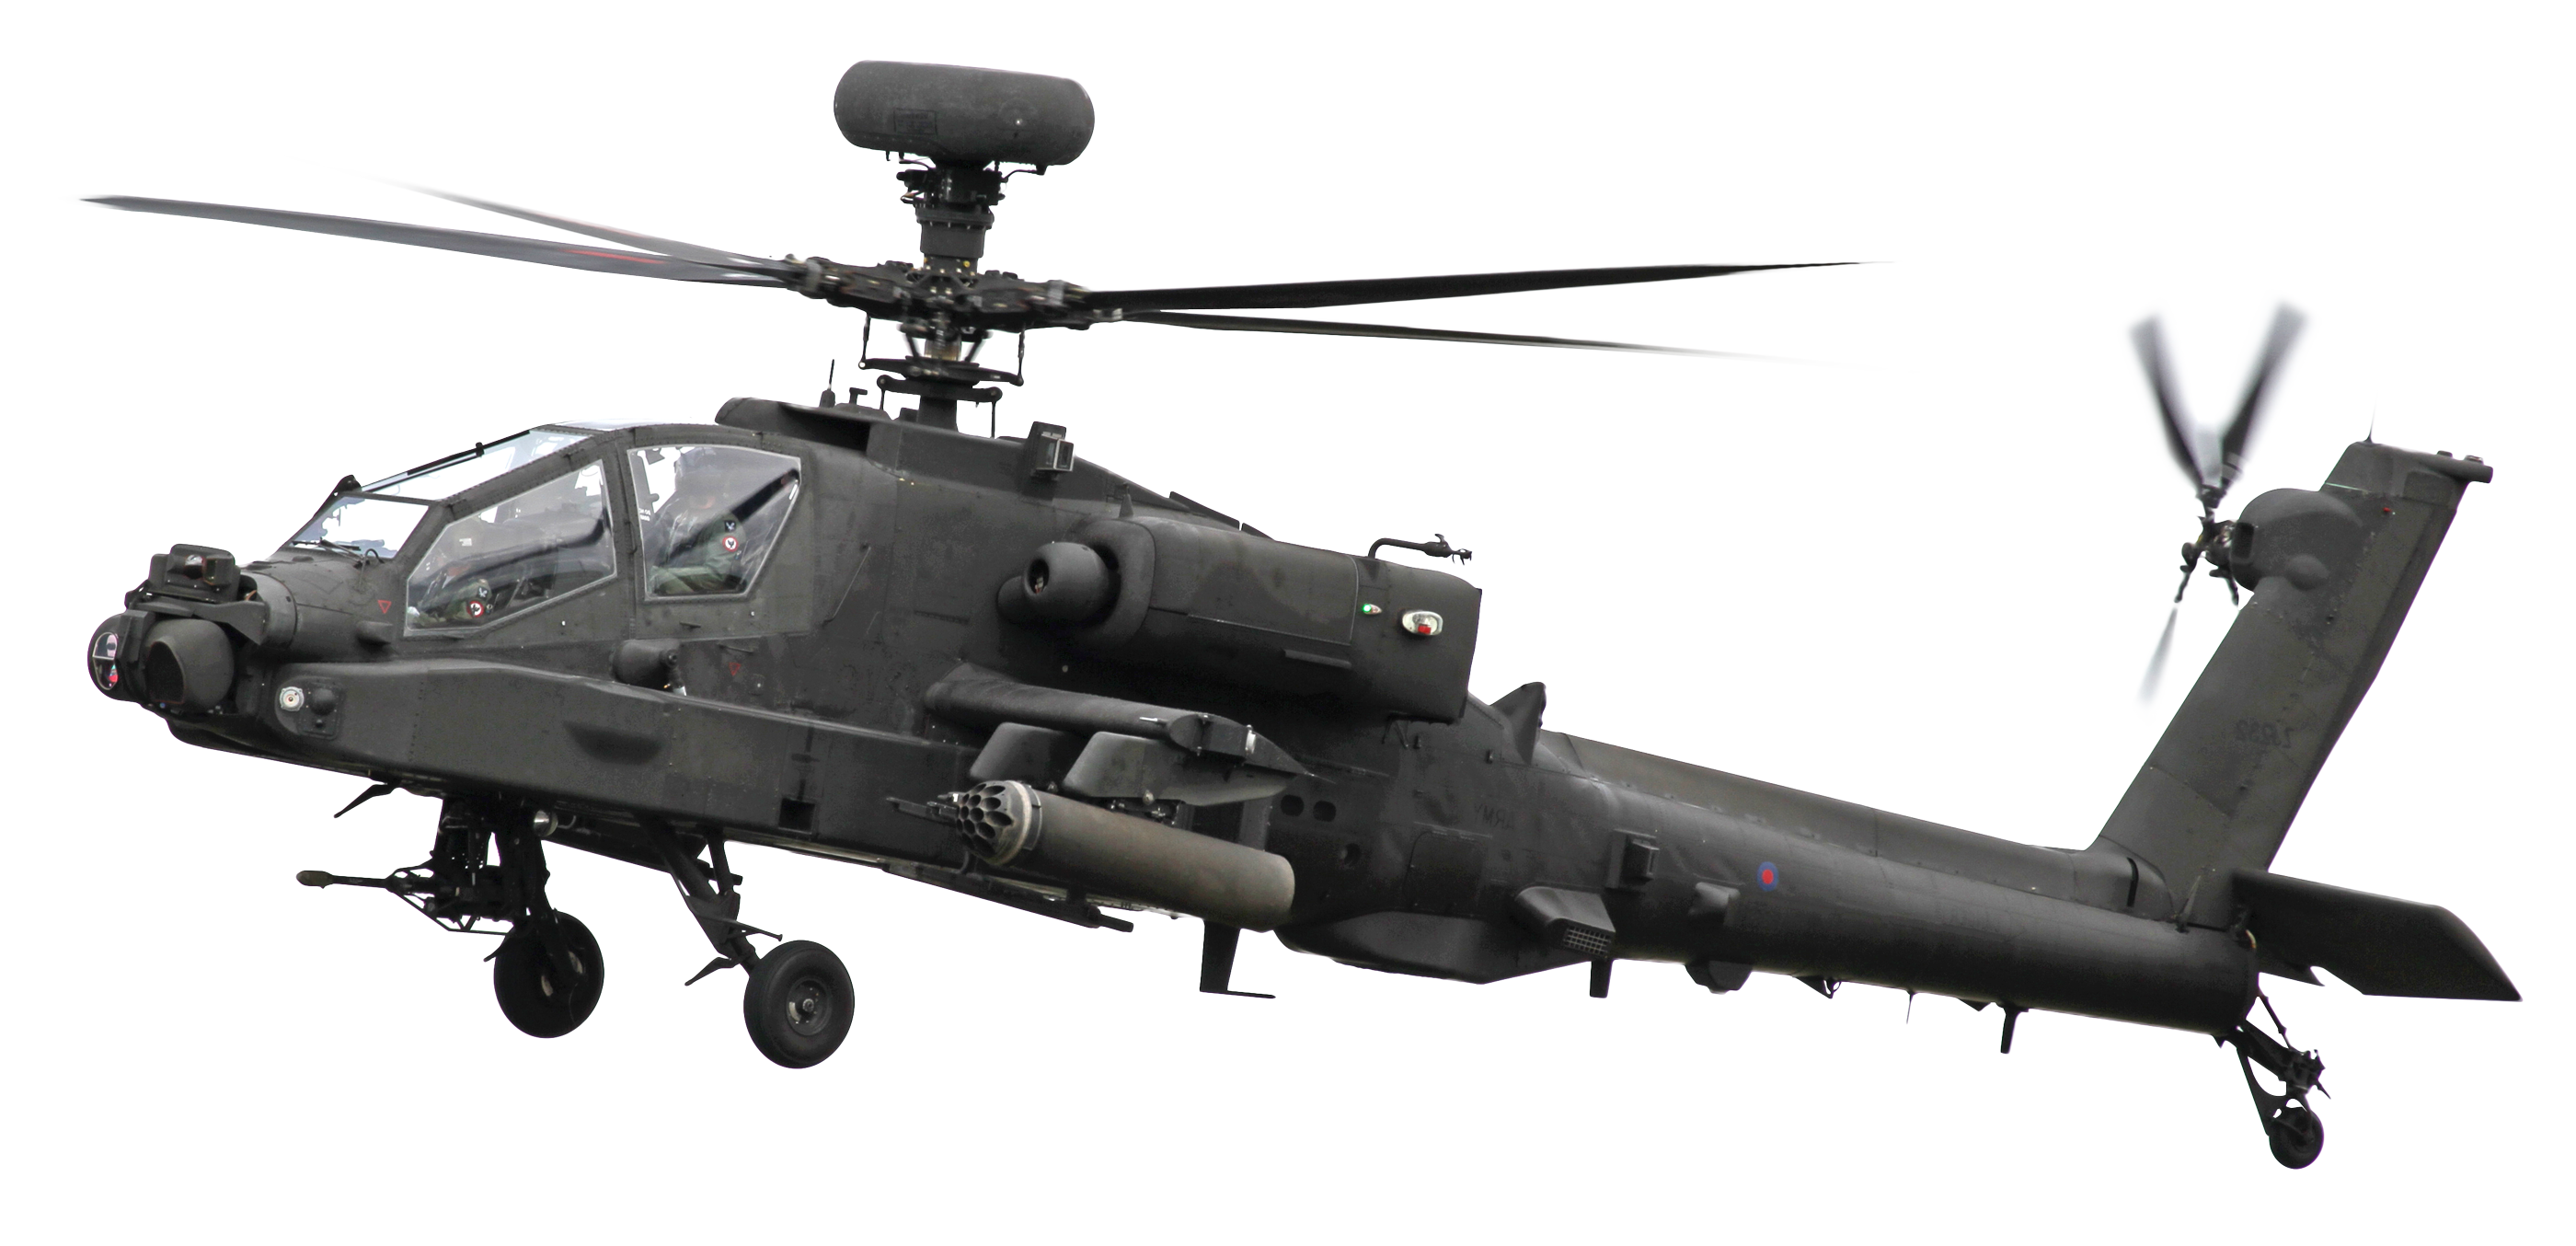 Helicopter Png Image Fighter Planes Military Helicopter Png